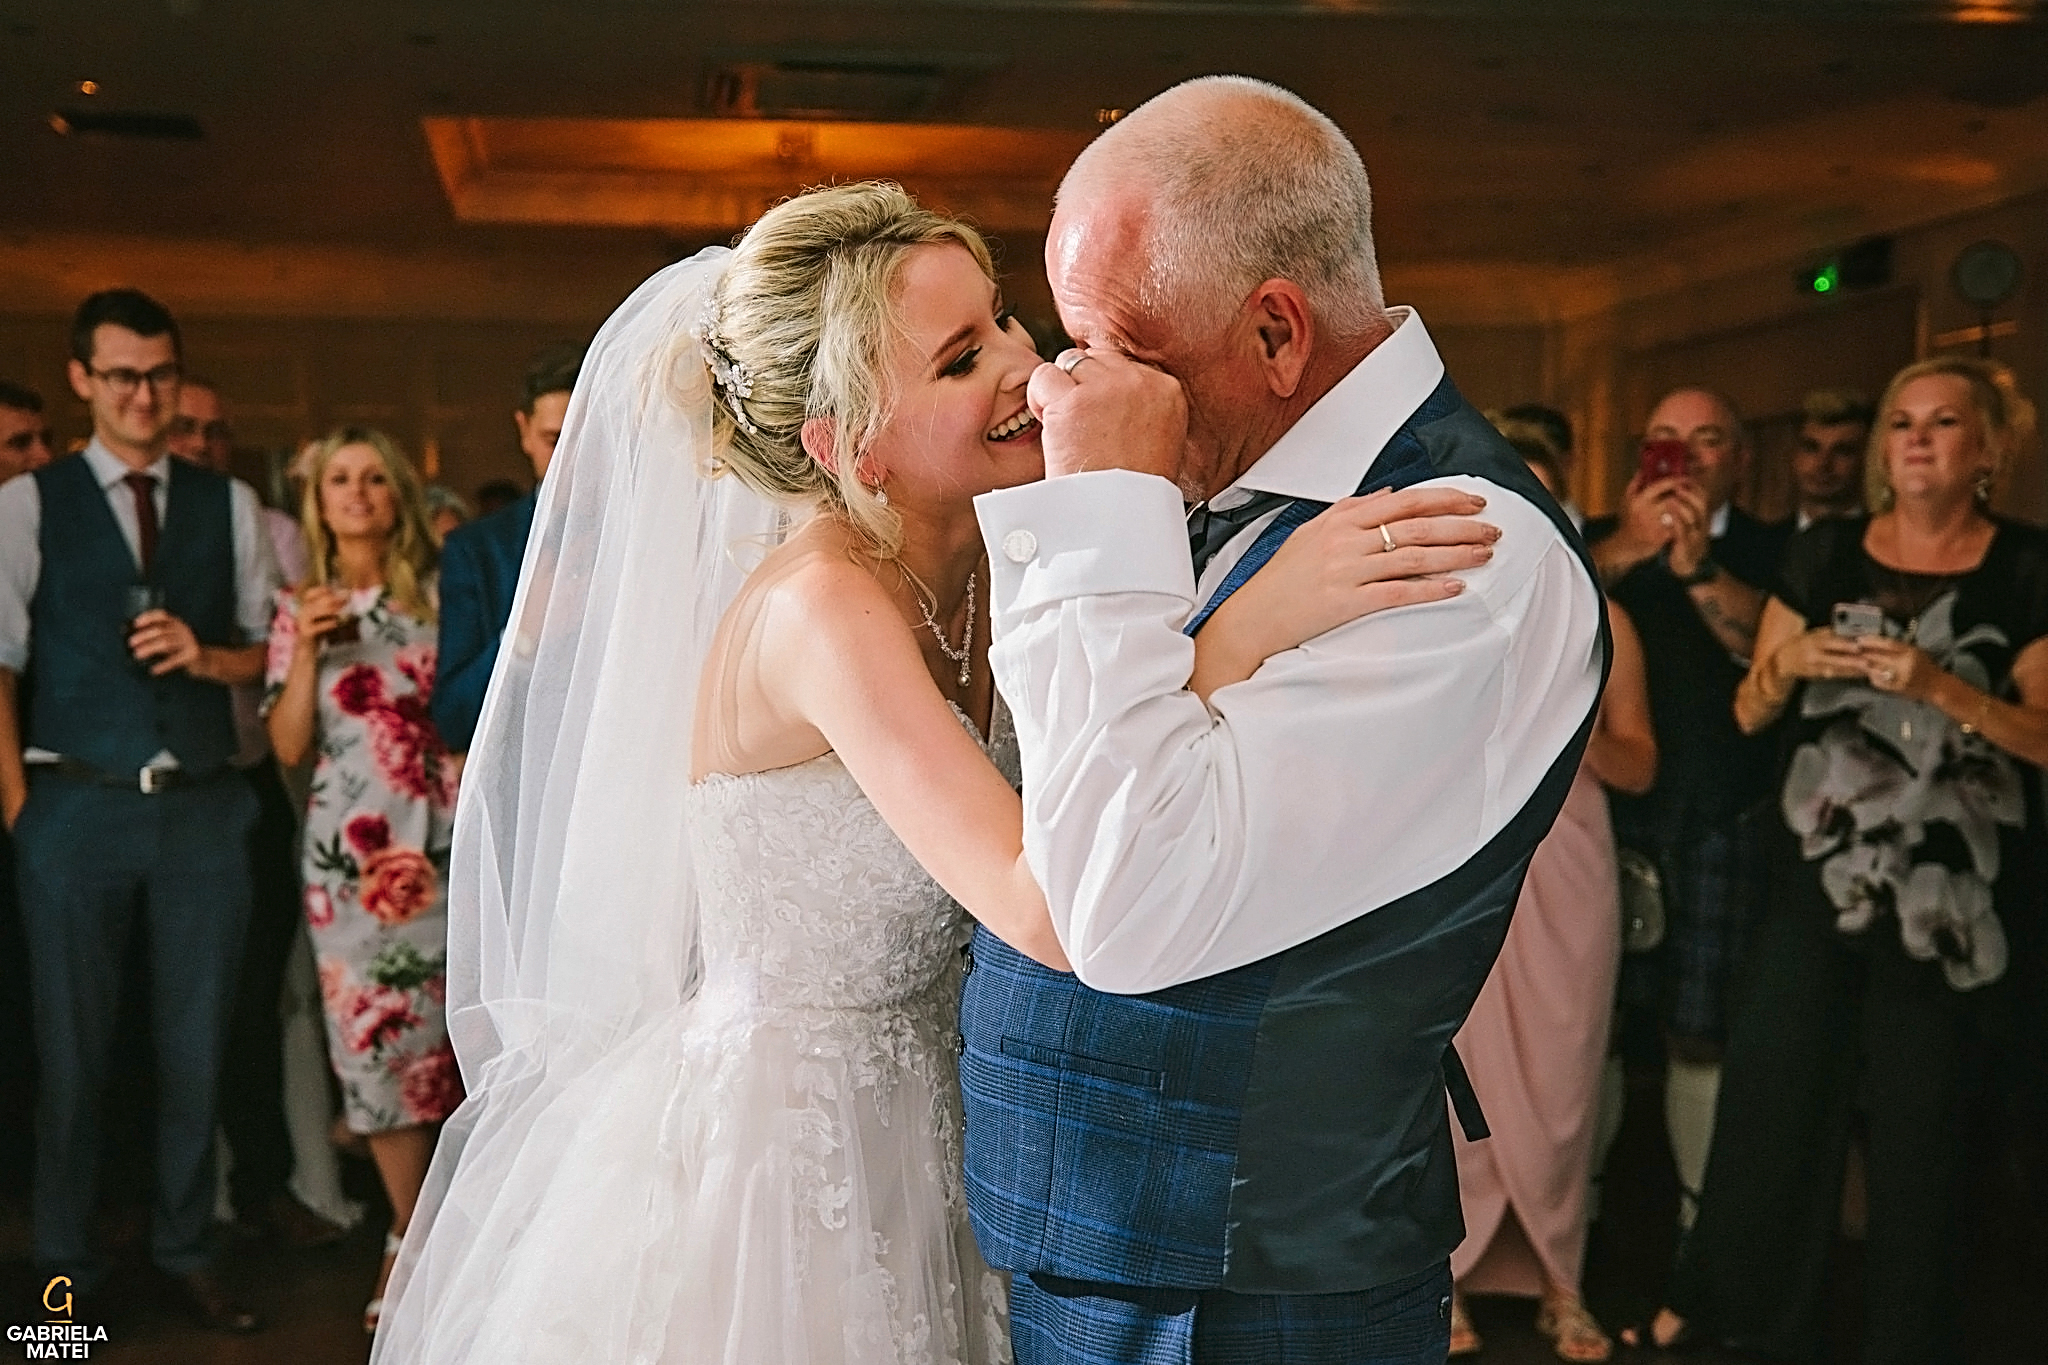 Father go the bride bursts into tears during father-daughter dance at wedding in London